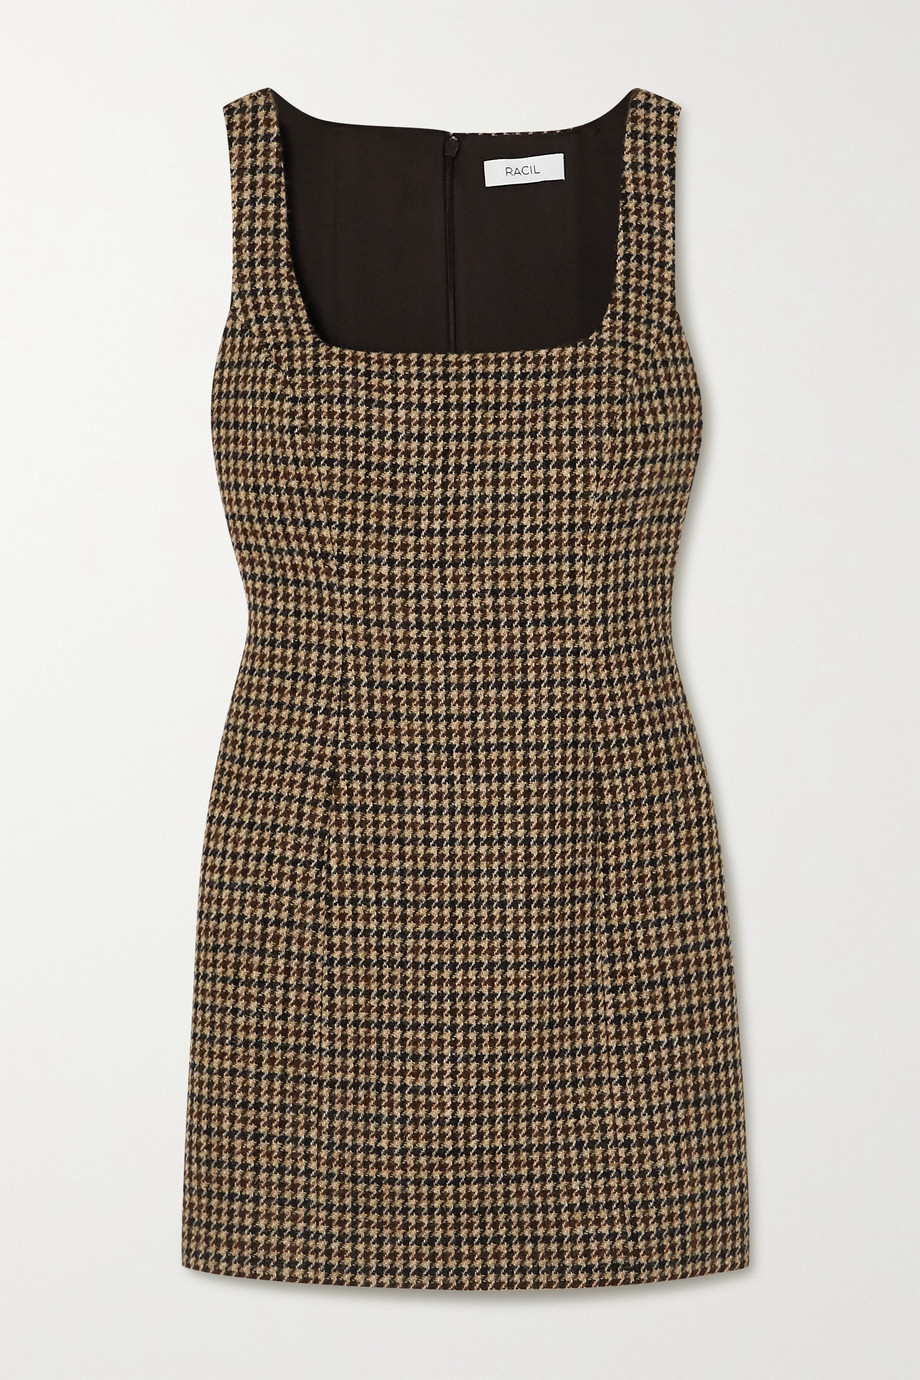 Racil Hailey houndstooth wool-tweed mini dress